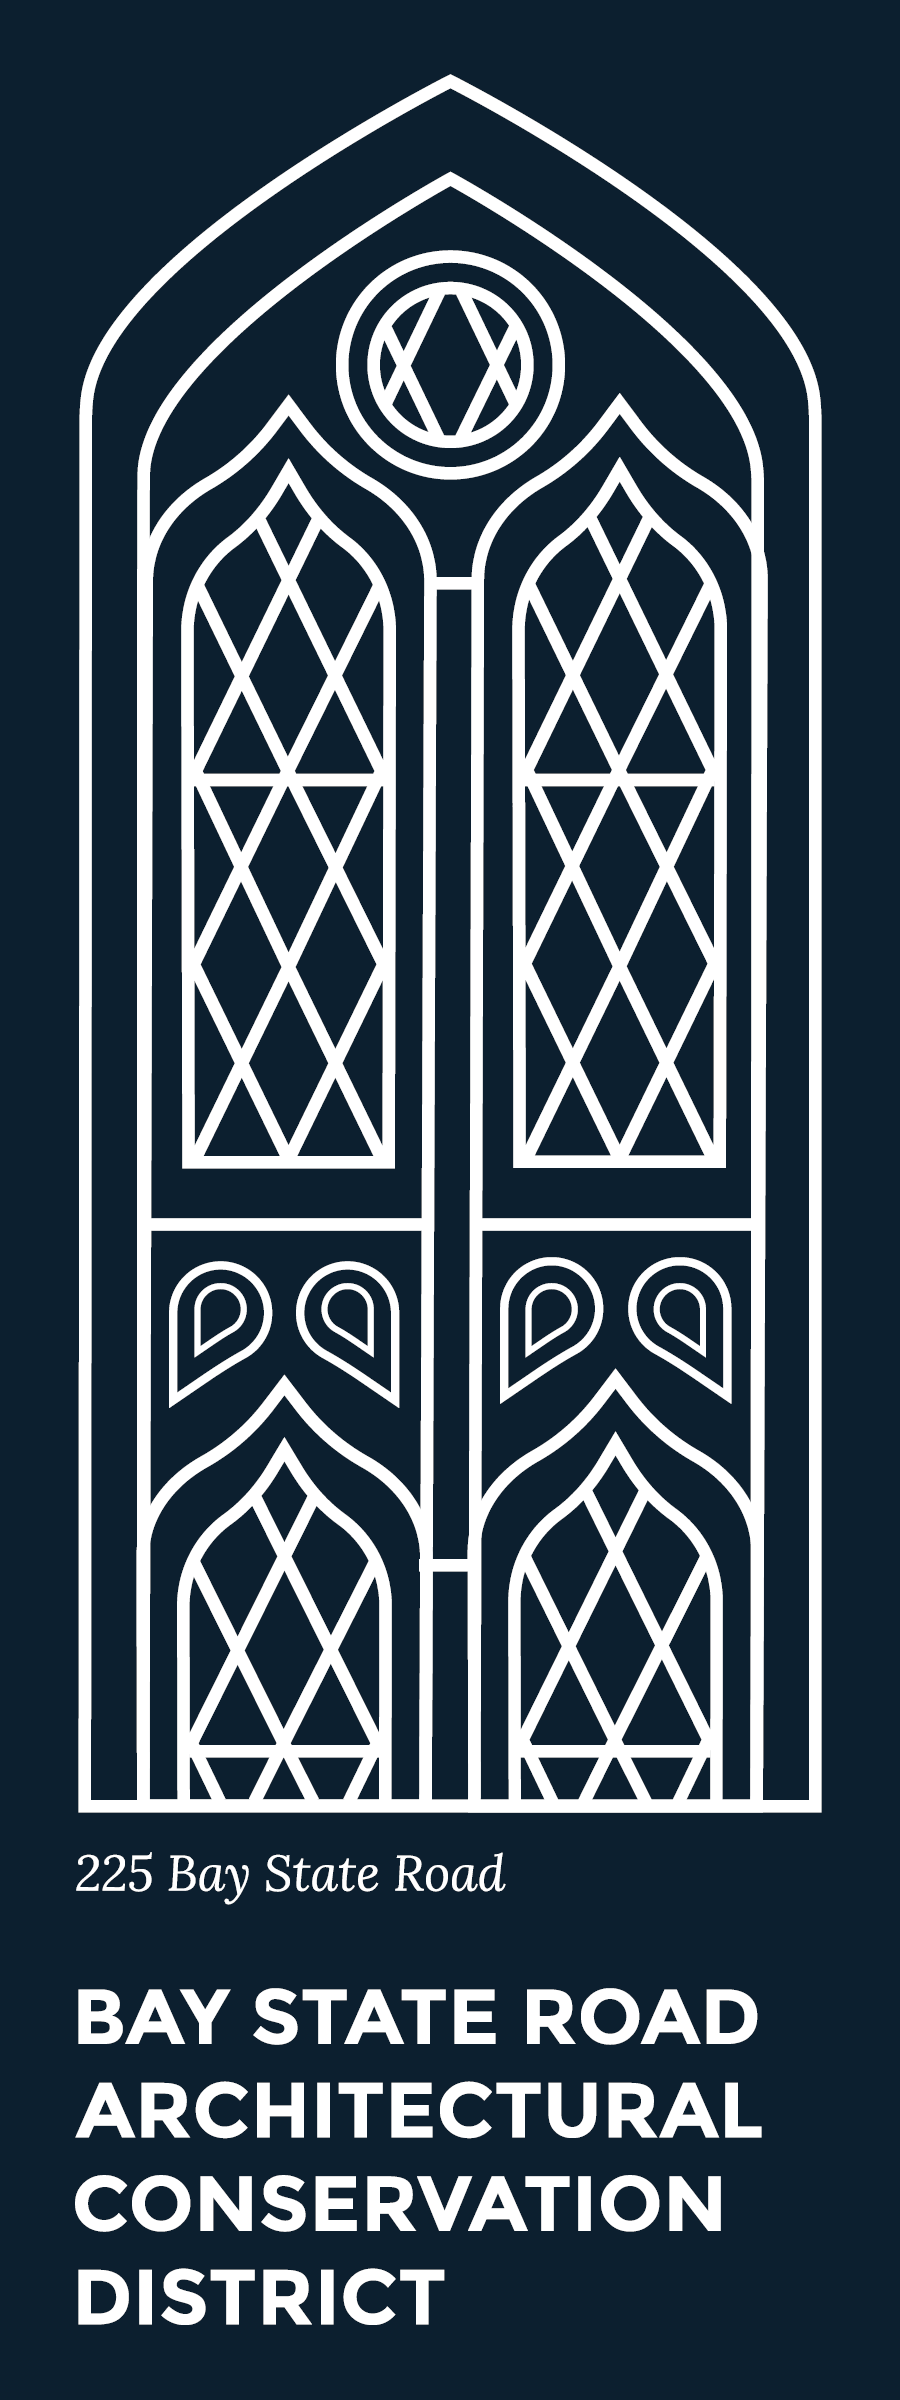 bookmarks5.png